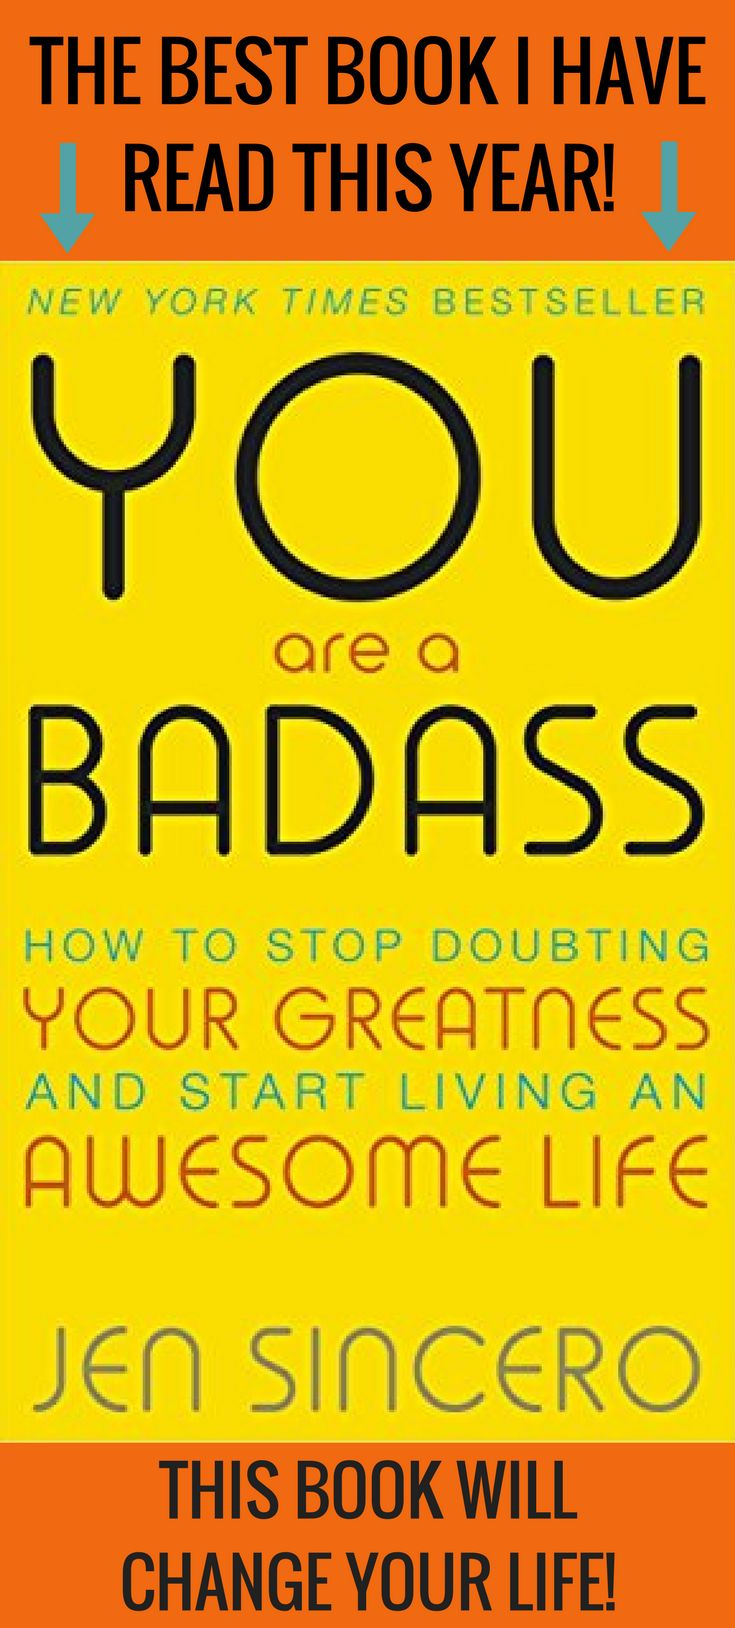 The best book I have read this year! This book will change your life! You are a Badass: How to Stop Doubting your Greatness and Start Living an Awesome Life by Jen Sincero